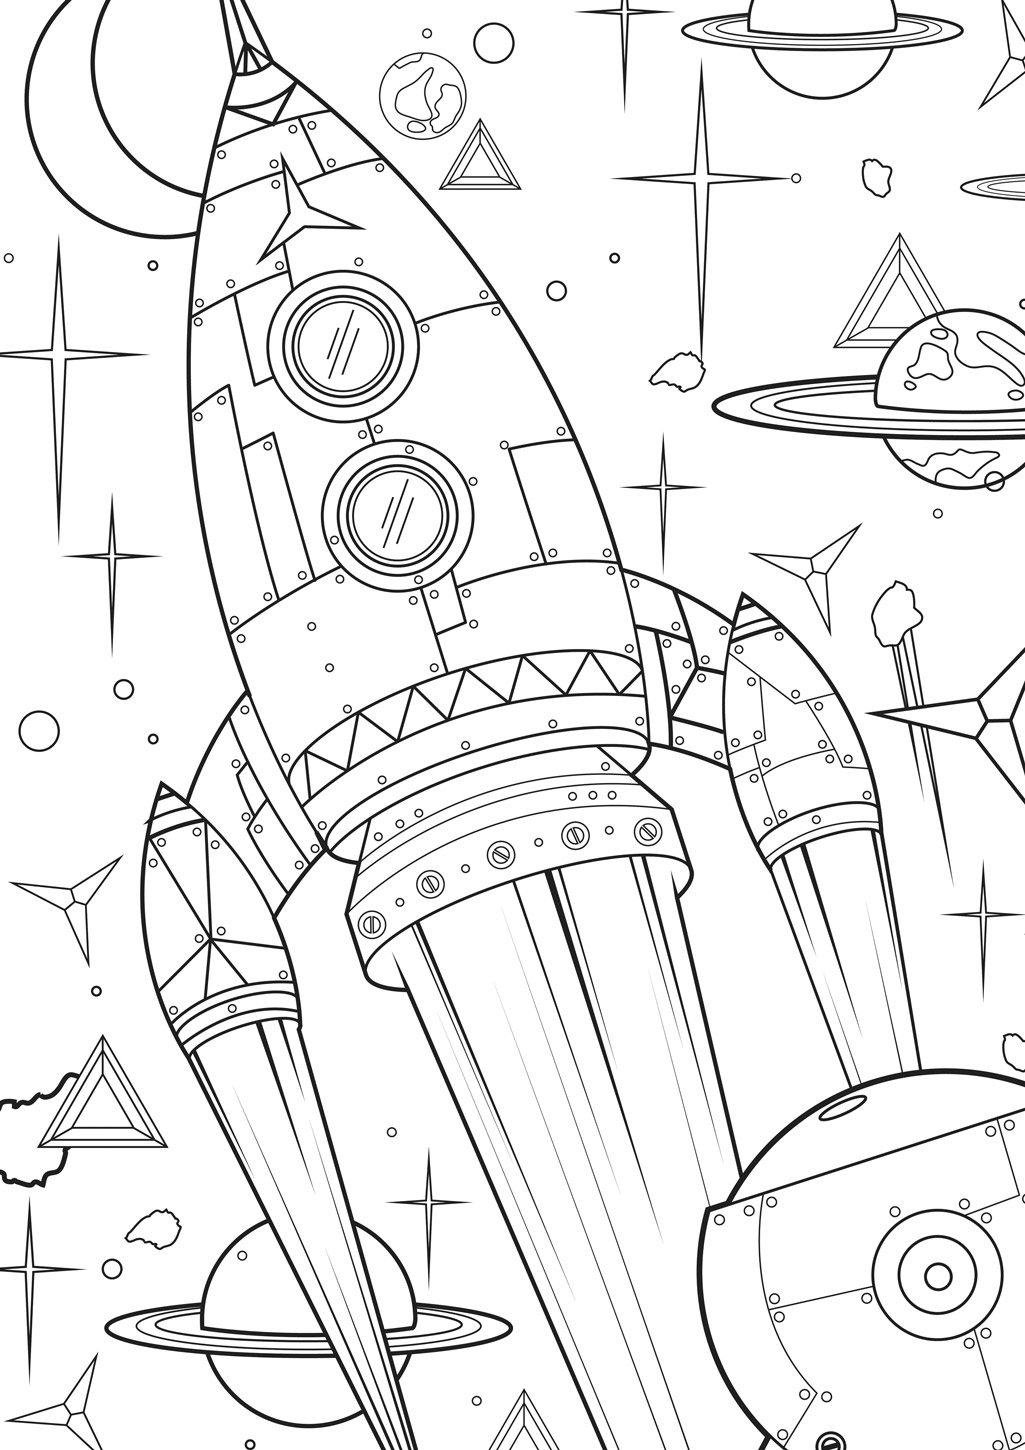 Fun colouring pages for kids